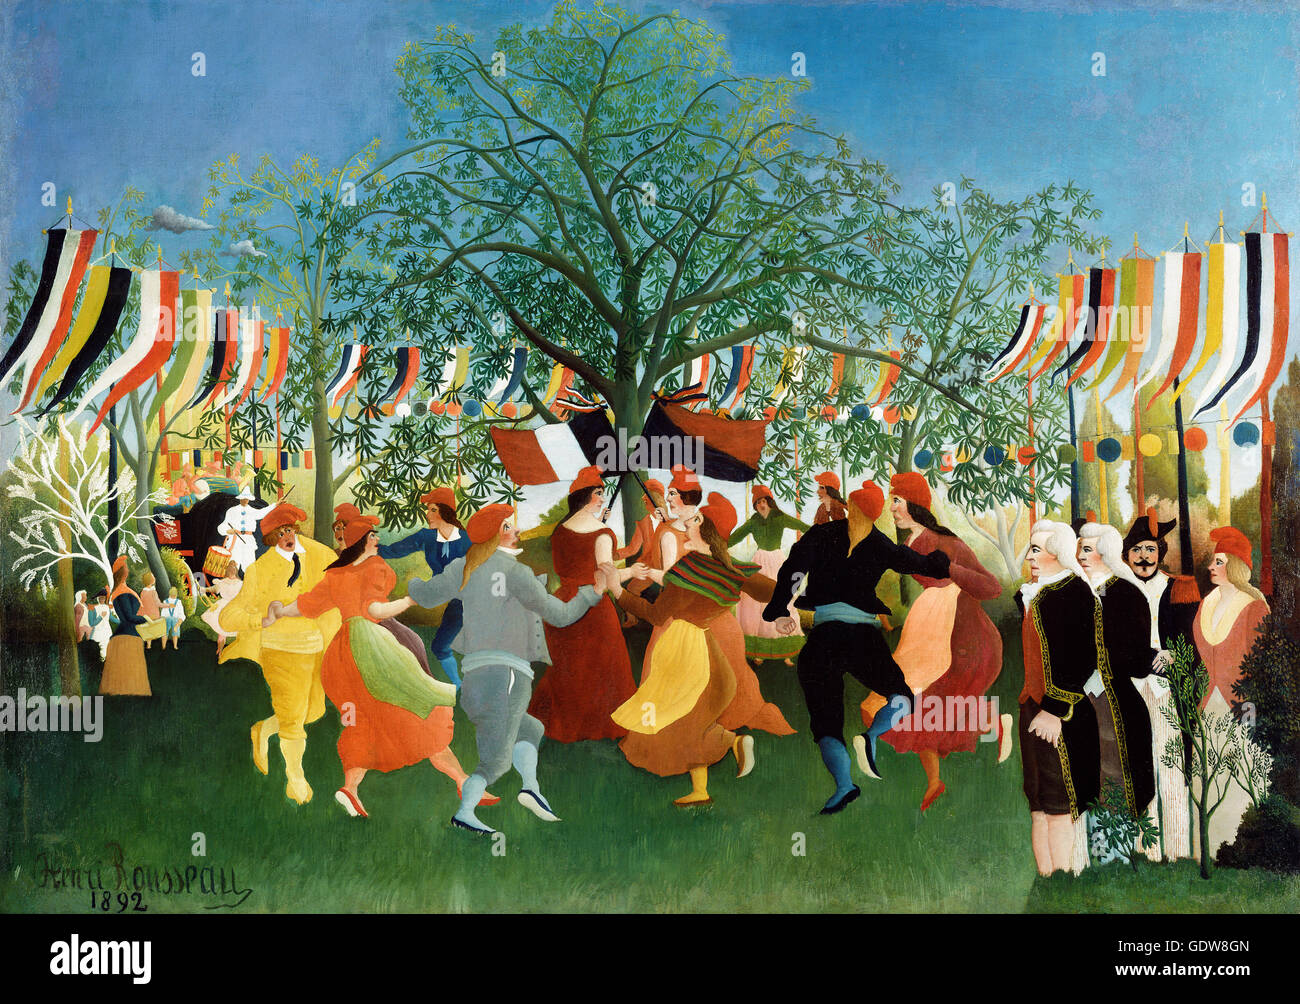 A Centennial of Independence by Henri Rousseau (1844-1910). Oil on canvas, 1892. Rousseau was a French Post-Impressionist - Stock Image